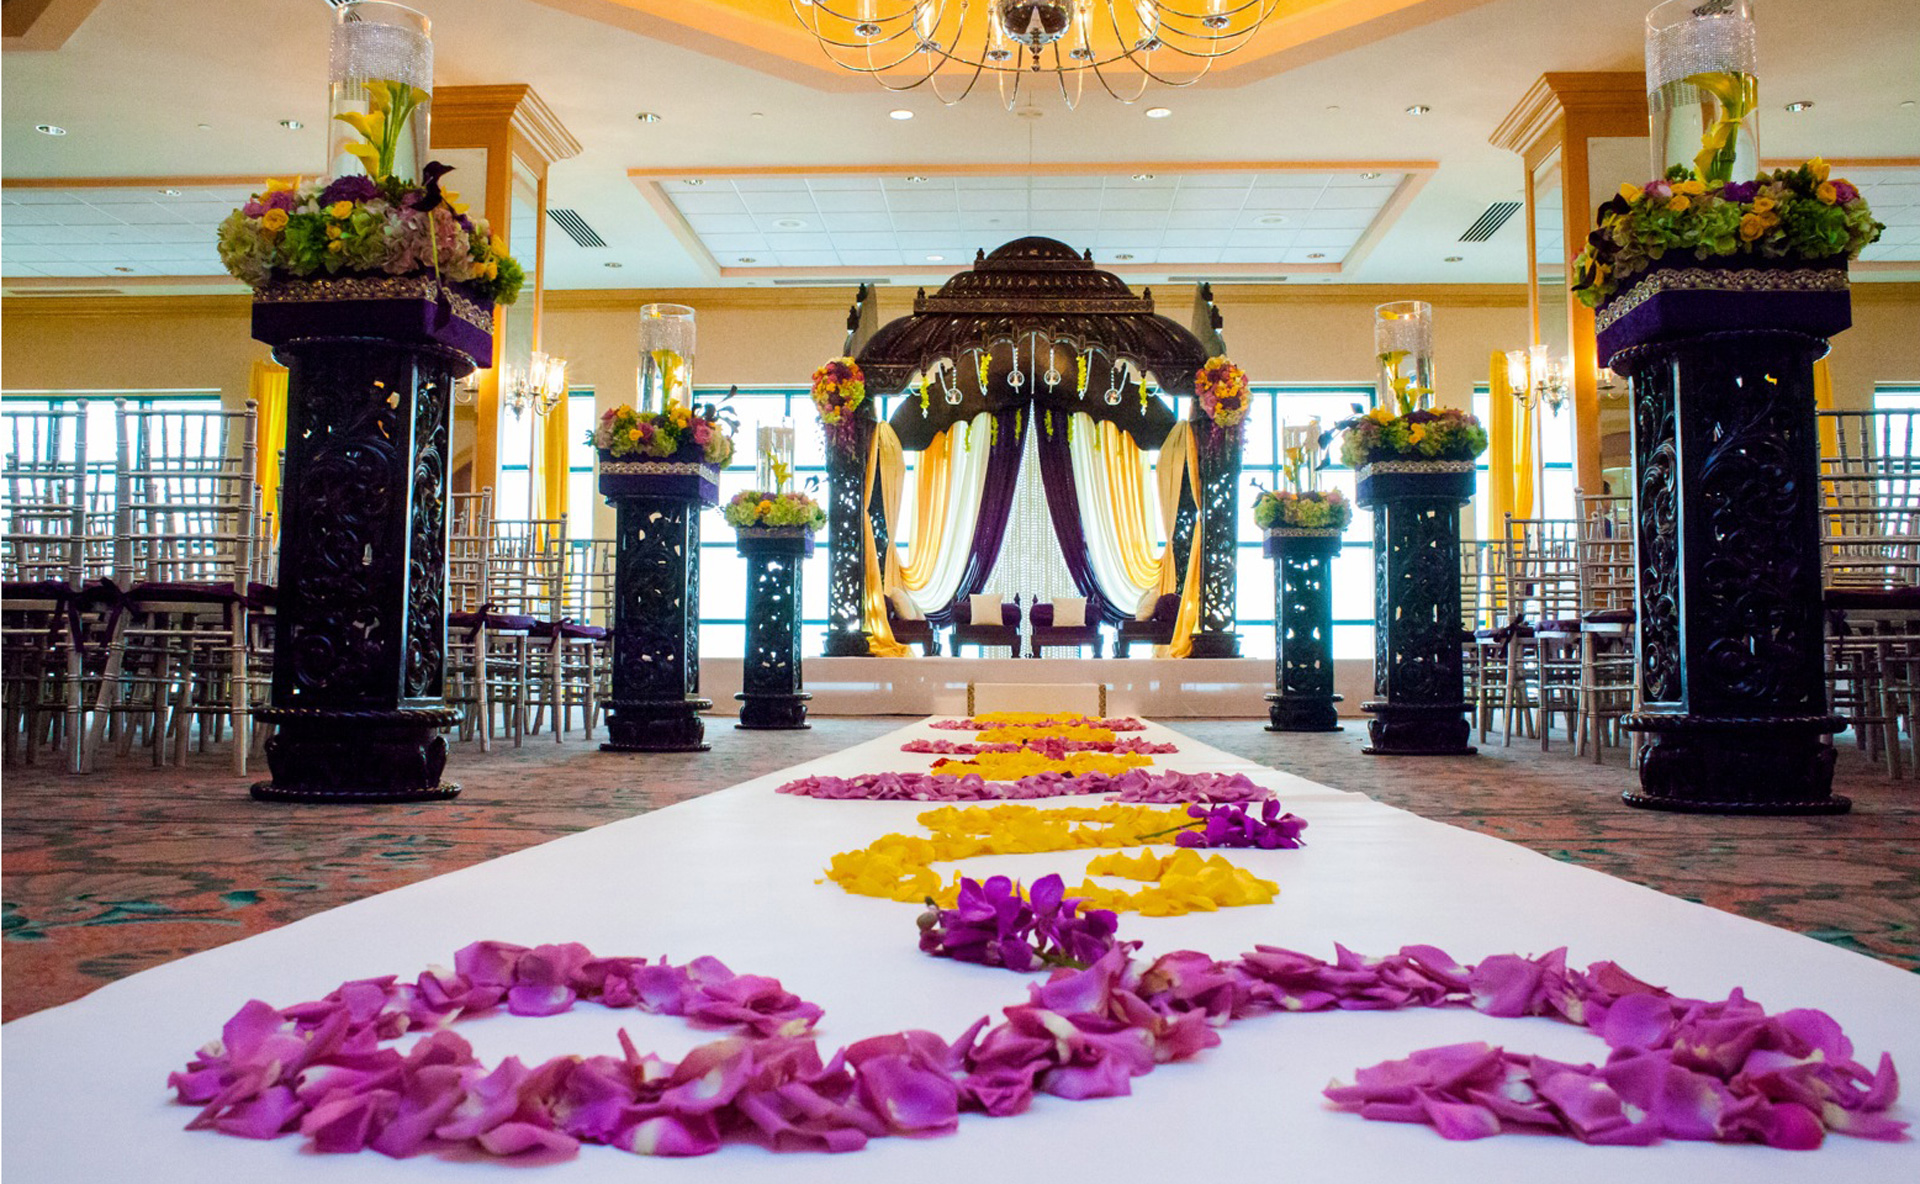 Posted by Suhaag Garden - A Design/Decor/Floral professional